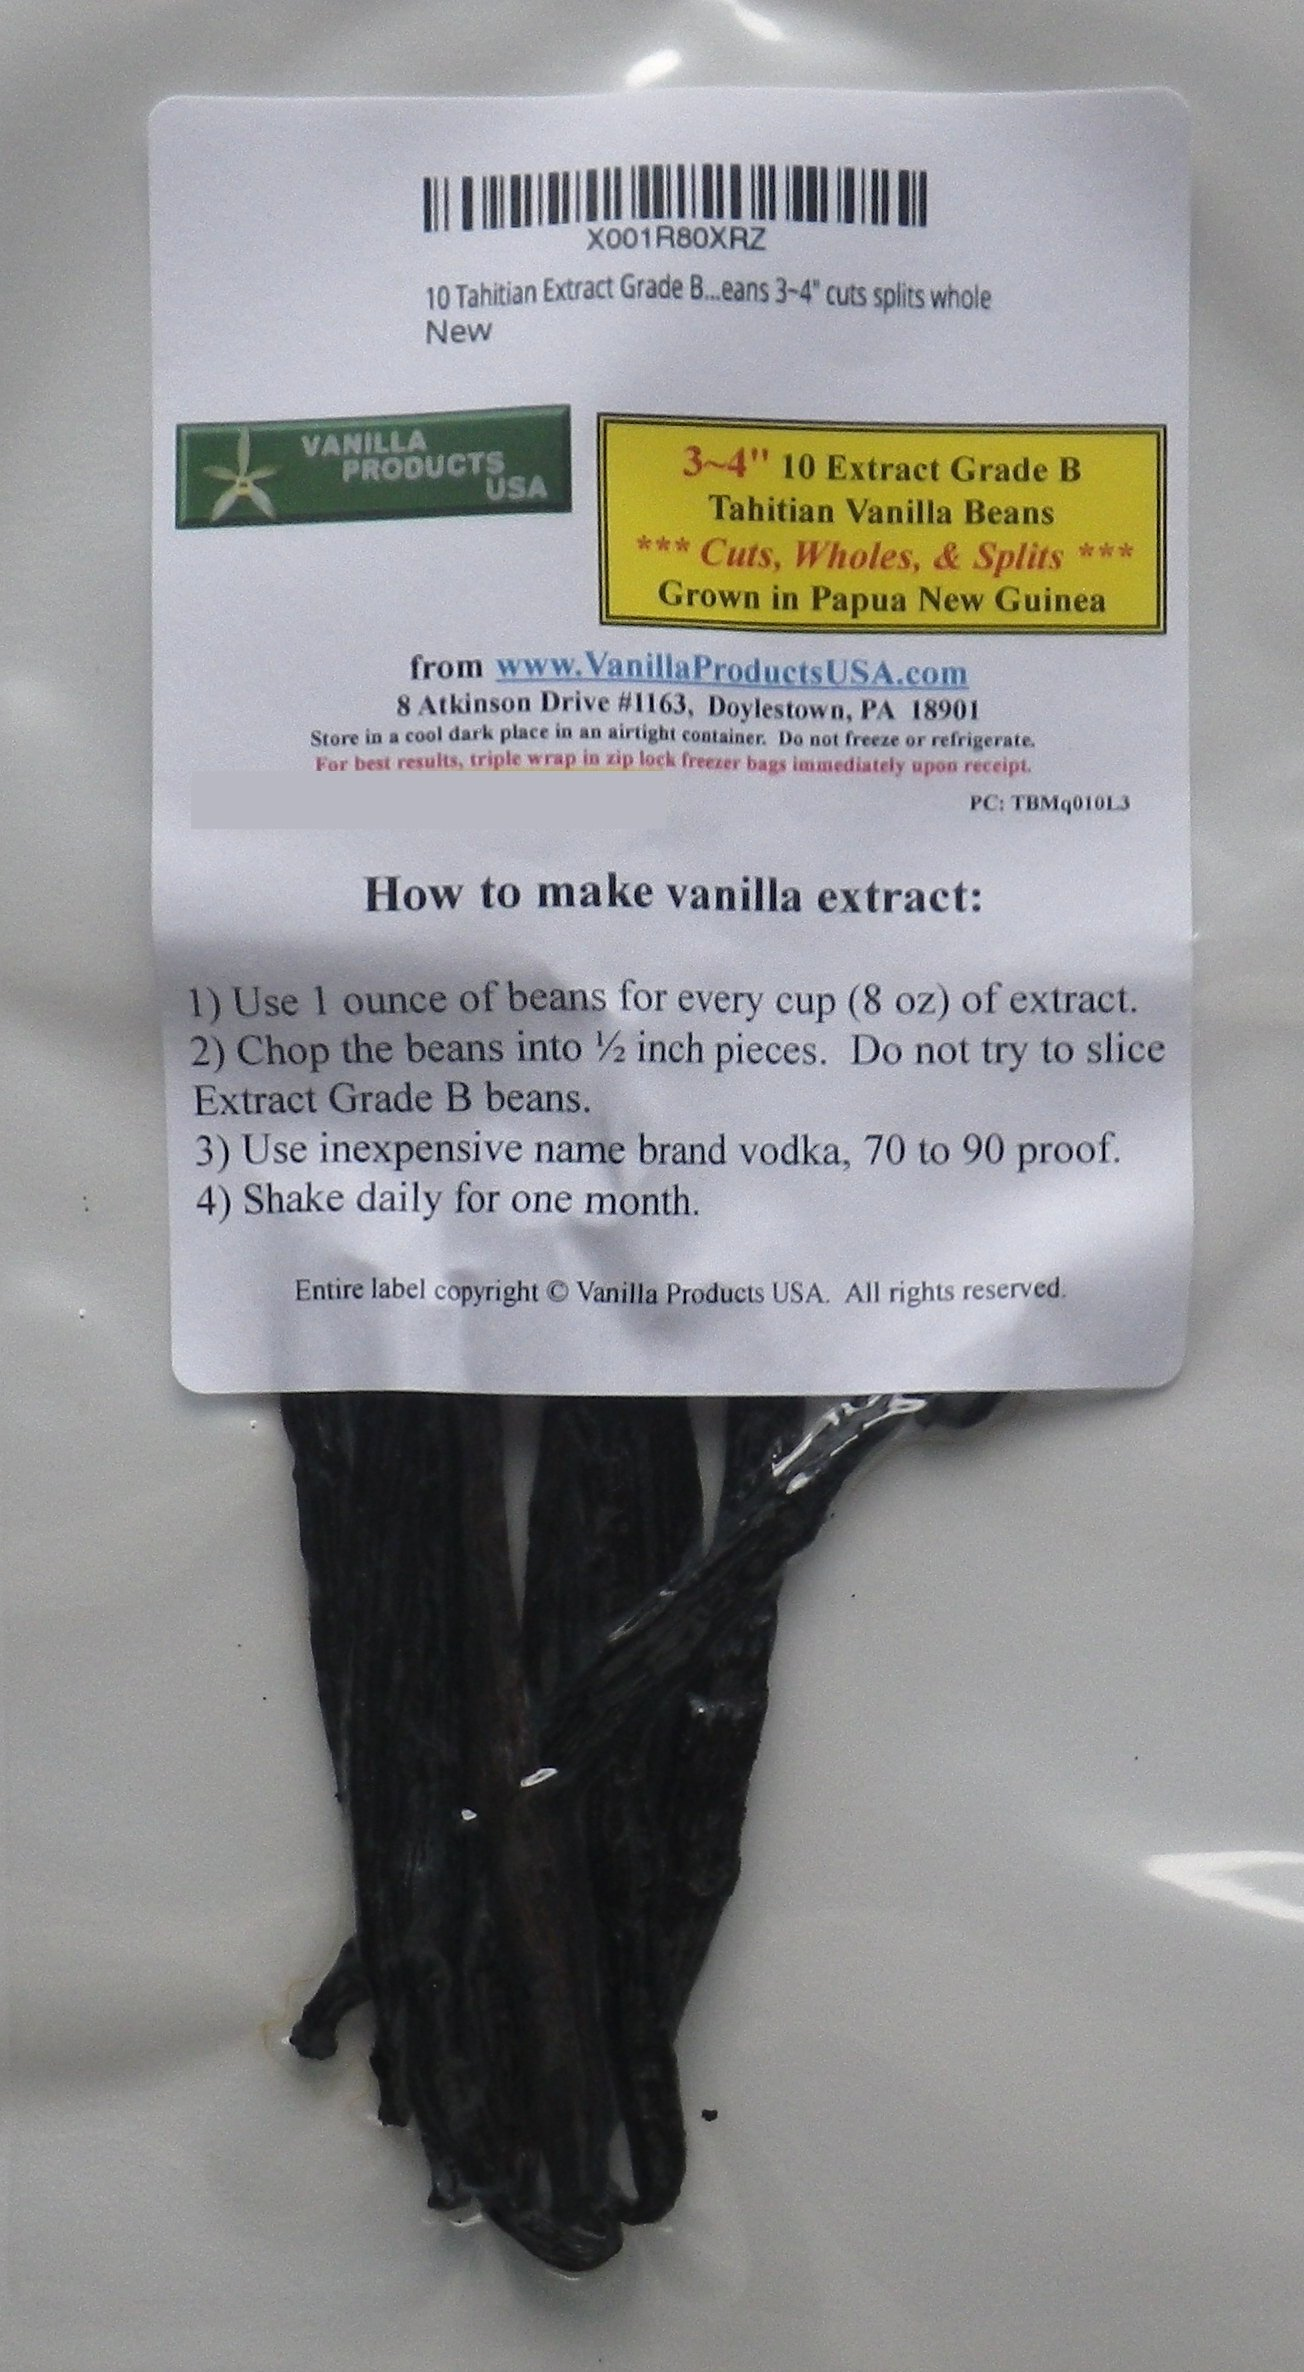 10 Tahitian Extract Grade B Vanilla Beans 3~4 inches, cuts splits whole by Vanilla Products USA (Image #1)